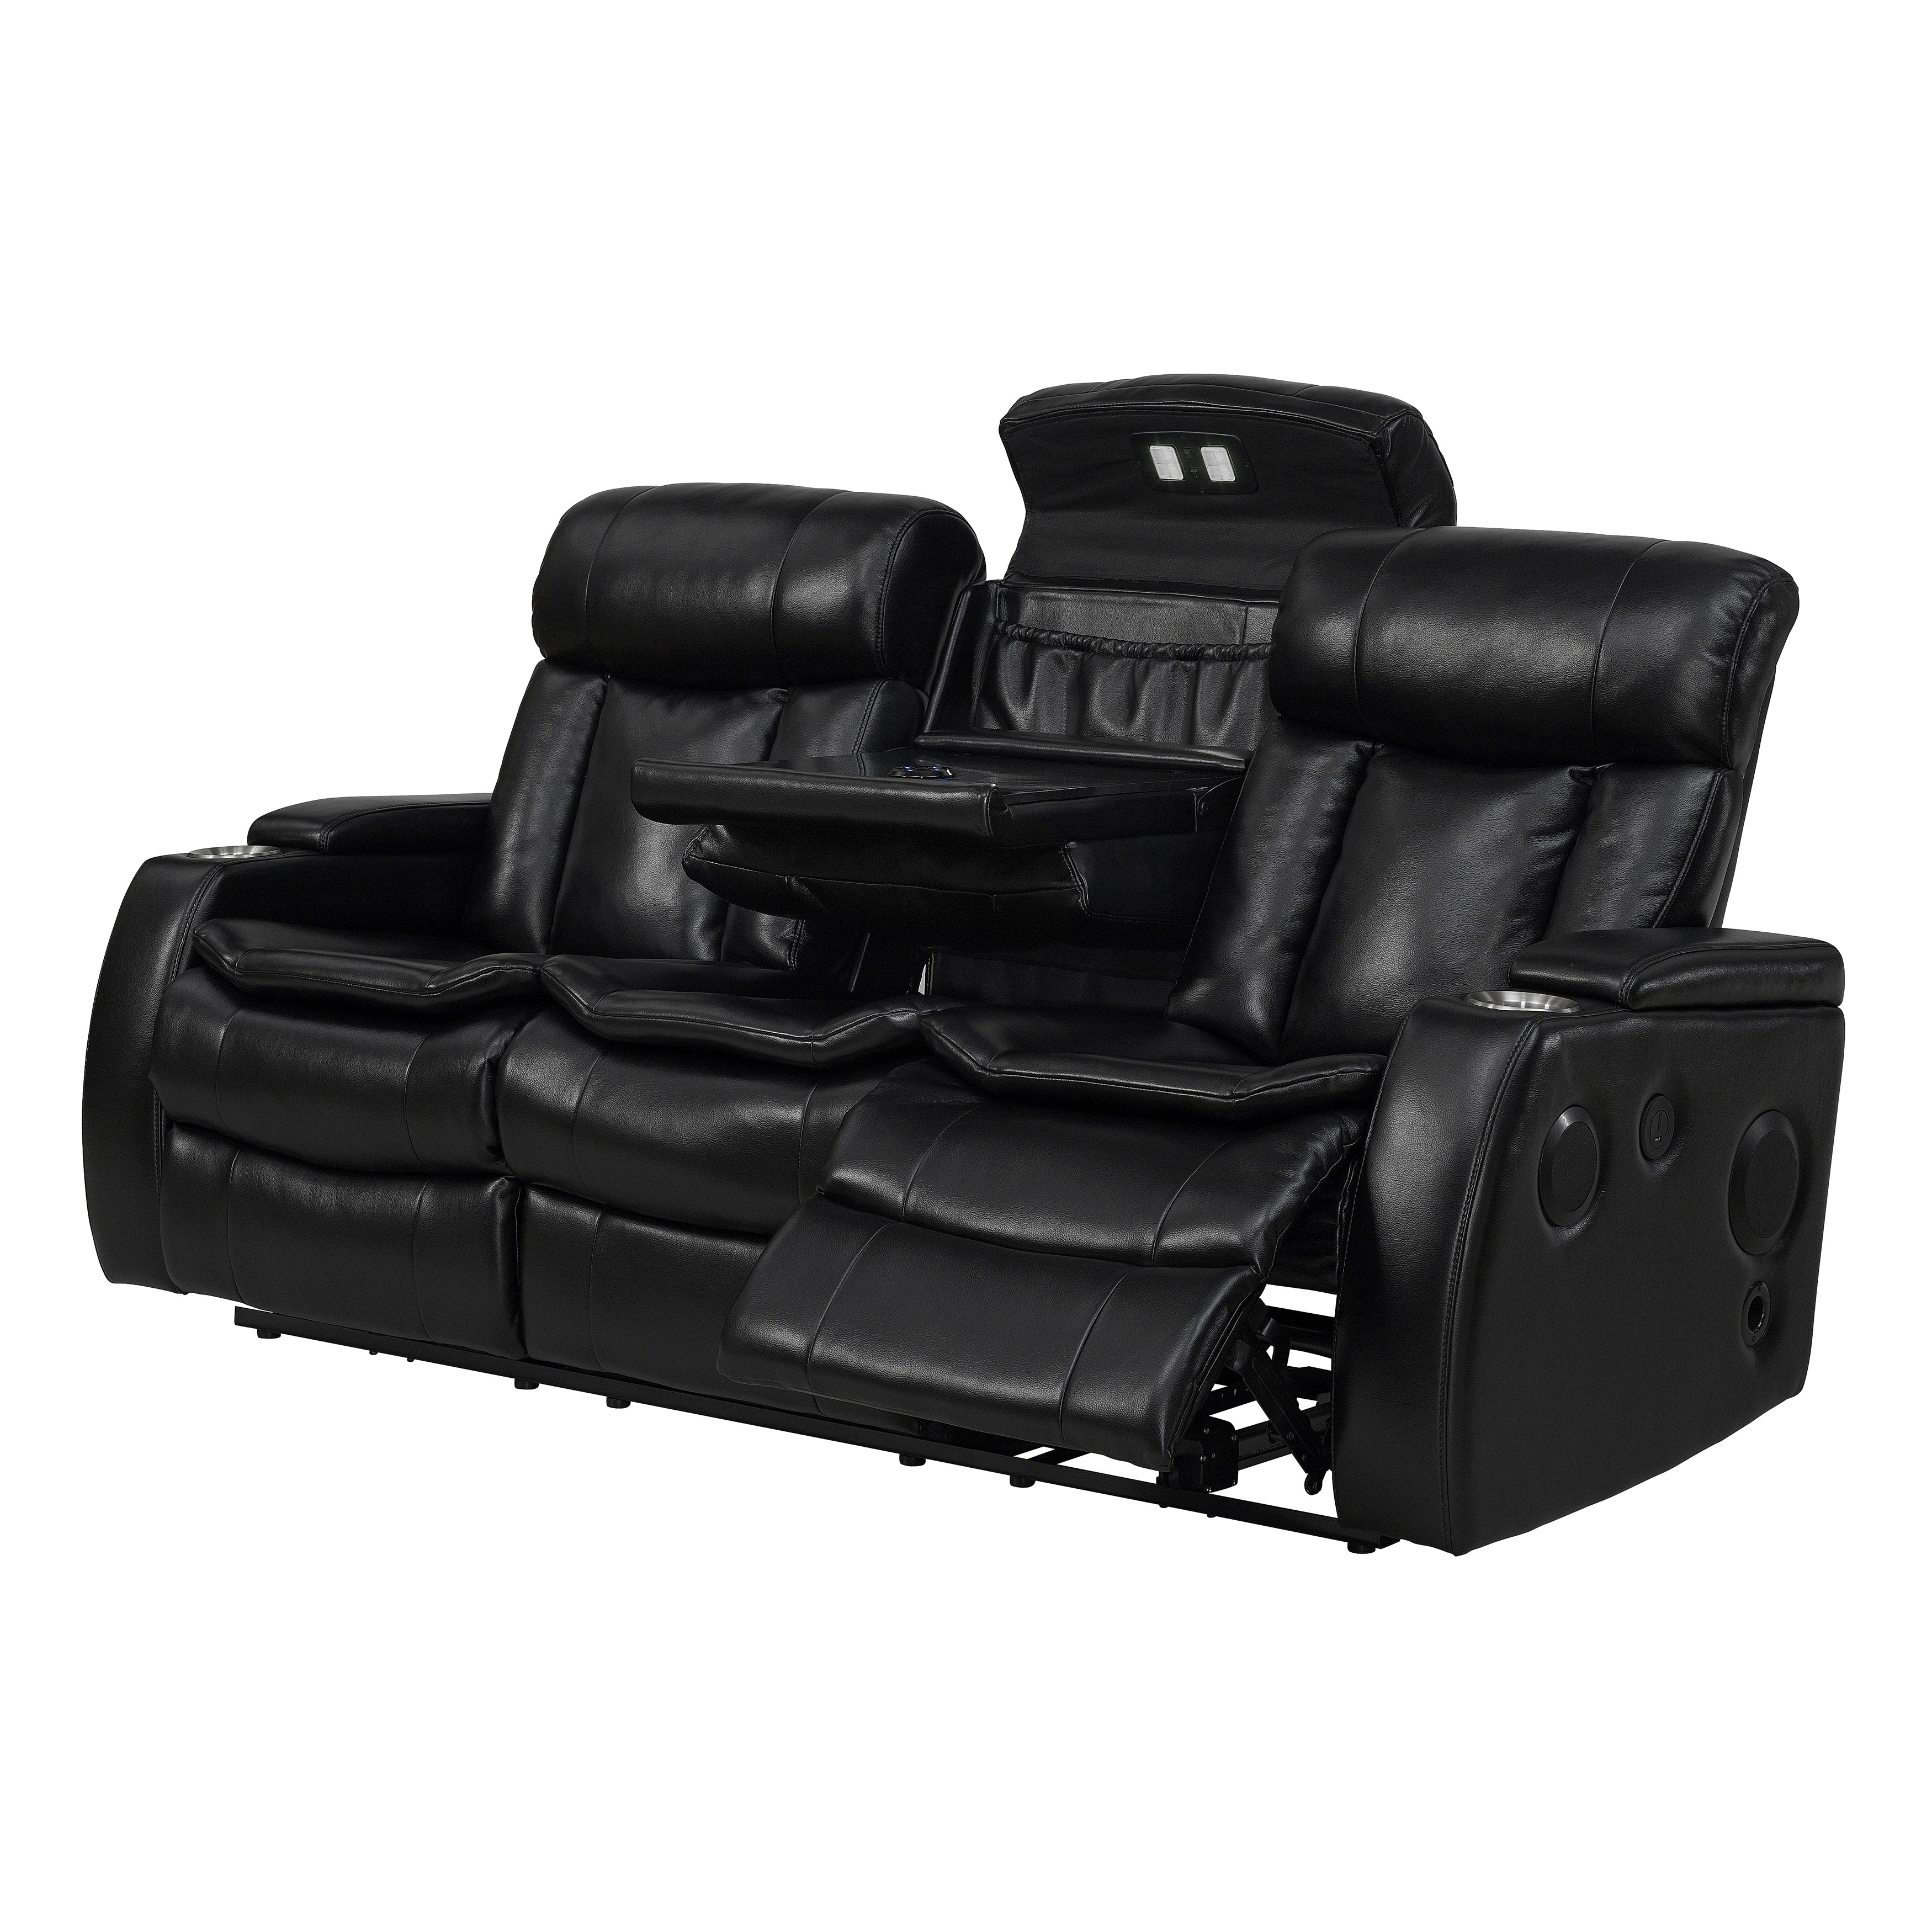 Best And Newest Recliner Sofas With Bluetooth Black Power Recliner Sofa With Usb – Free Shipping Today (View 2 of 17)